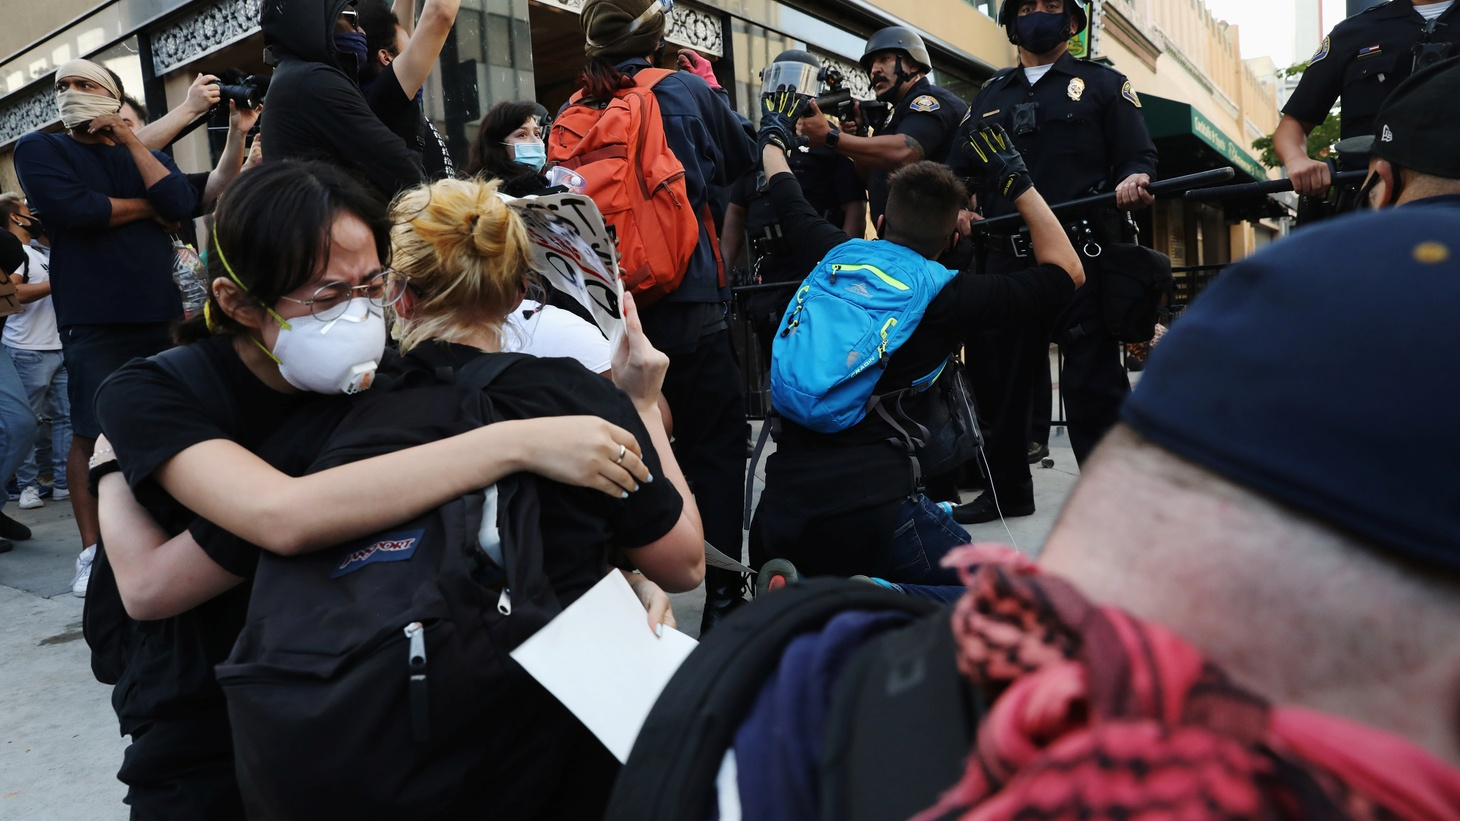 Demonstrators react as they protest amid nationwide unrest over the death in Minneapolis police custody of George Floyd, in Long Beach California, U.S., May 31, 2020.